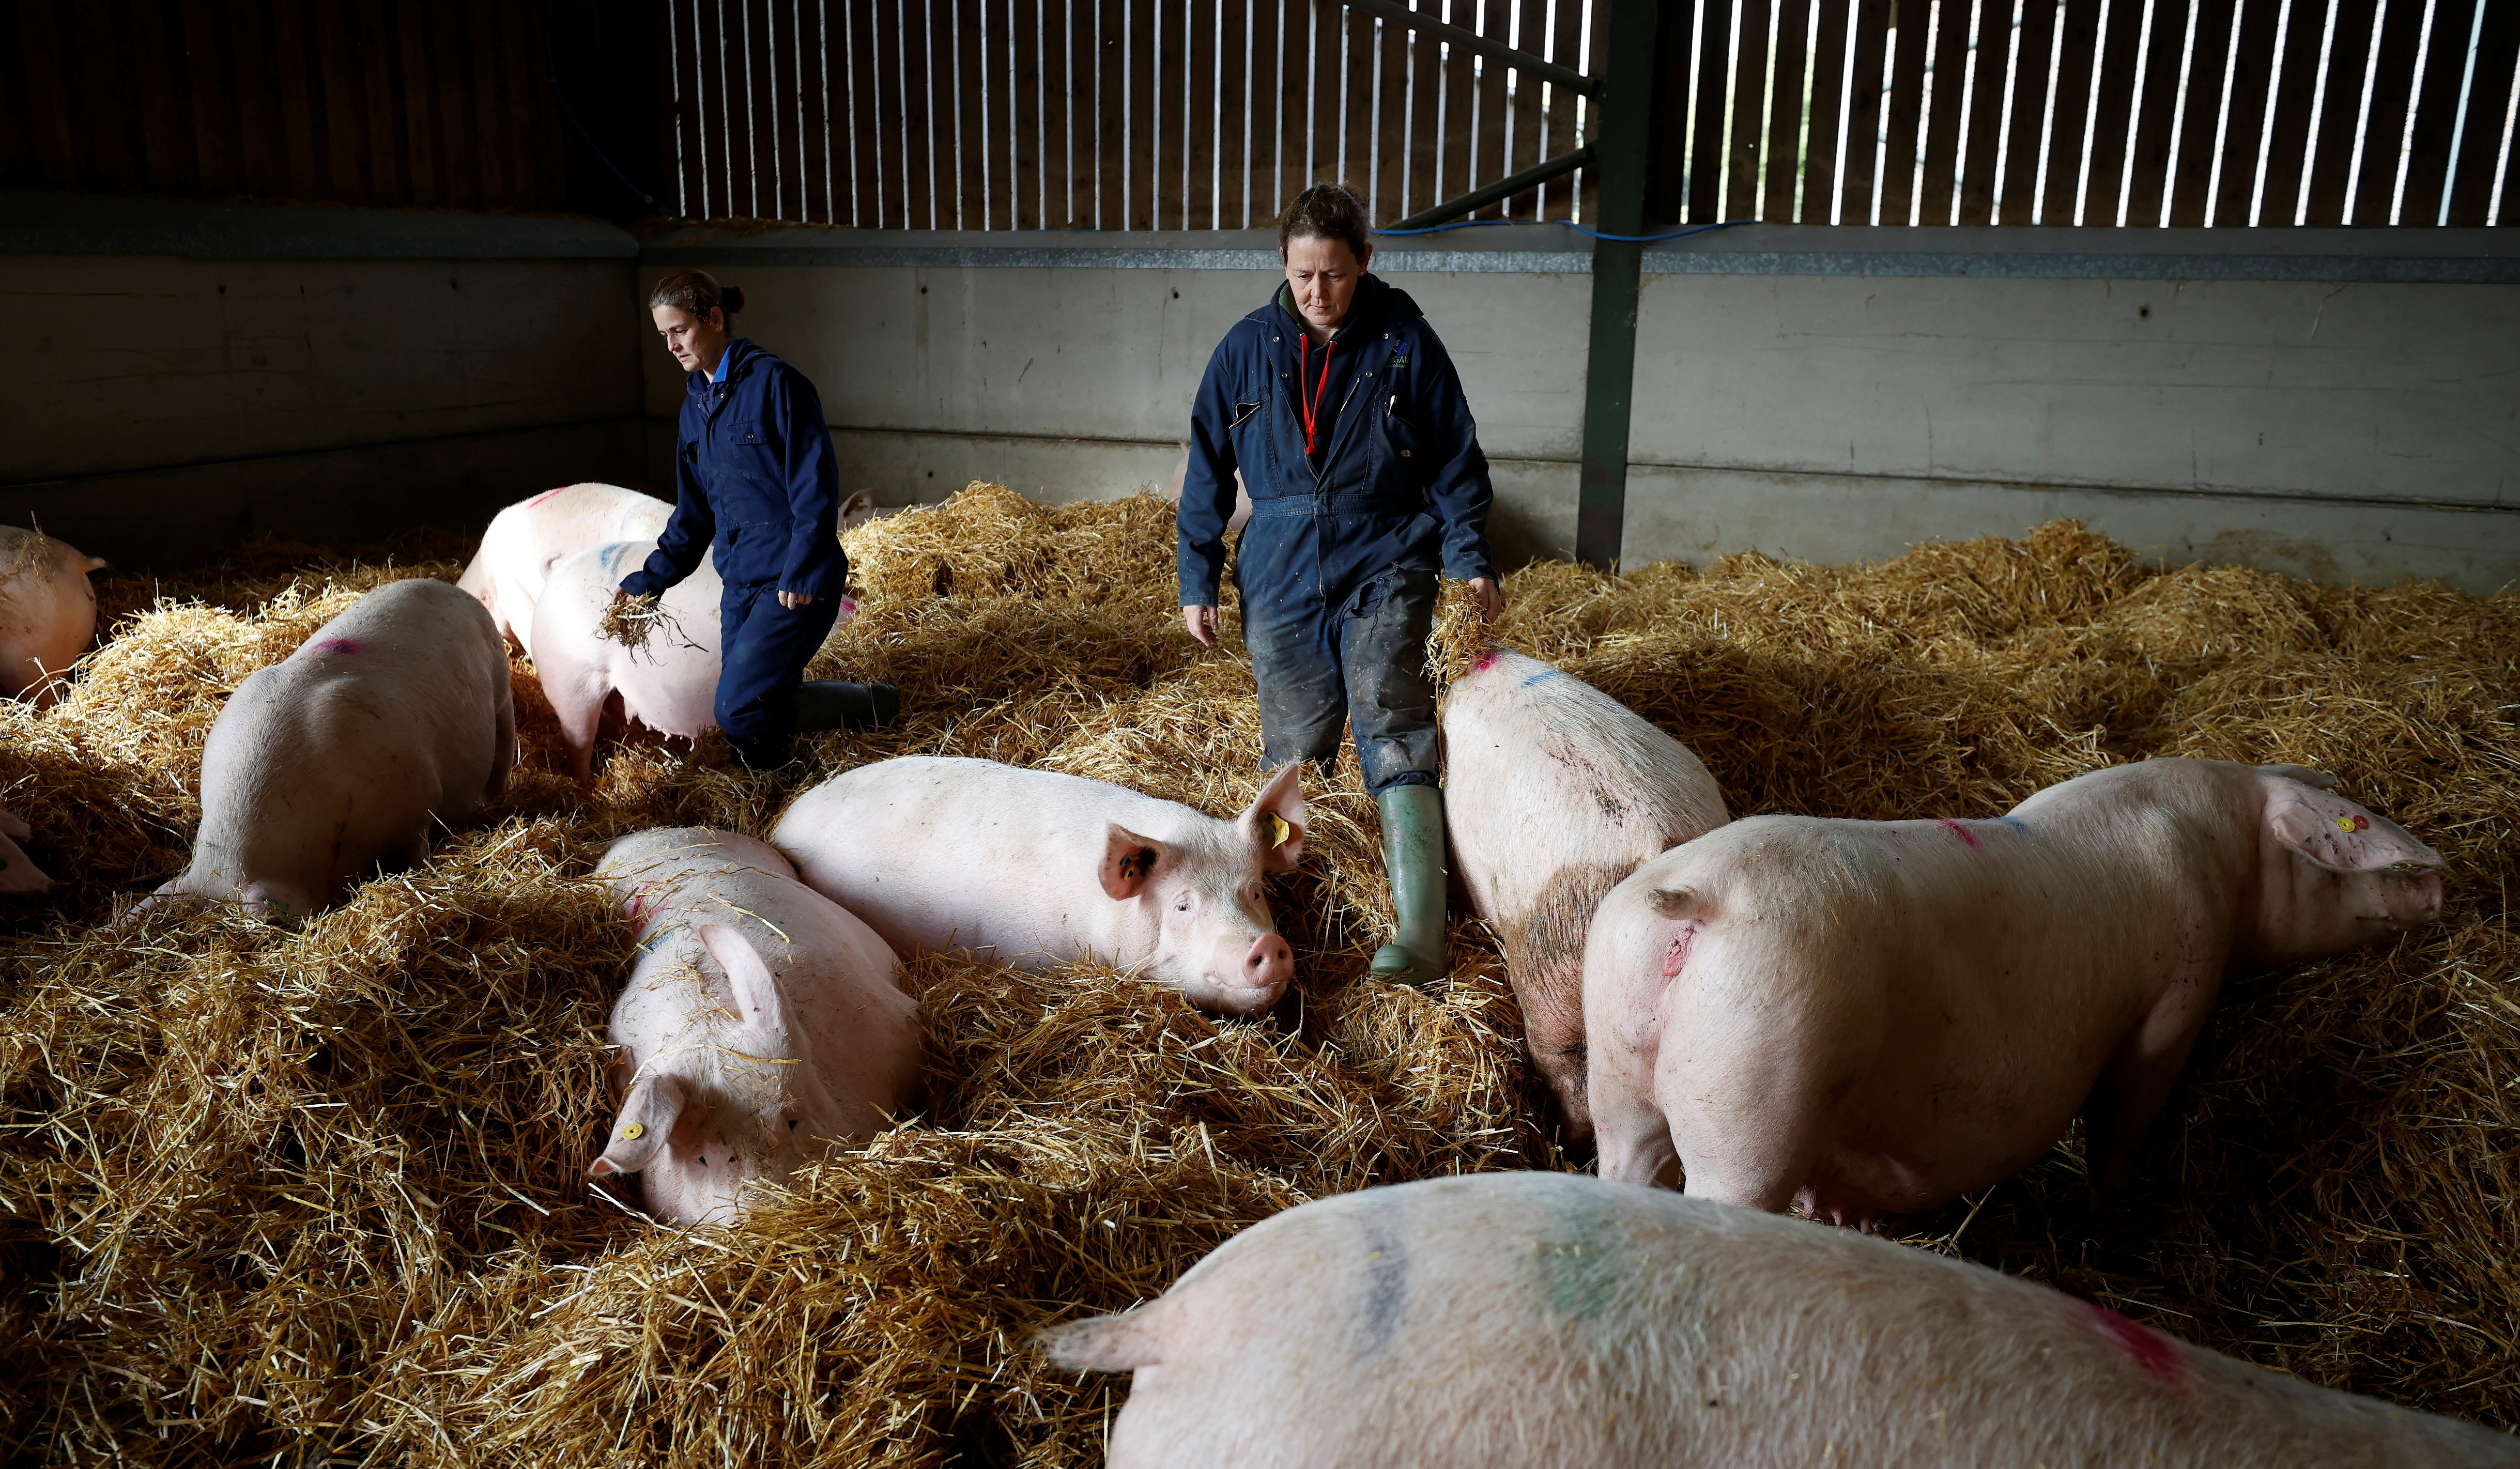 Farmers Kate Morgan (L) and Vicky Scott stand with some of their breeding sows on their family pig farm near Driffield, Britain, October 12, 2021. REUTERS/Phil Noble